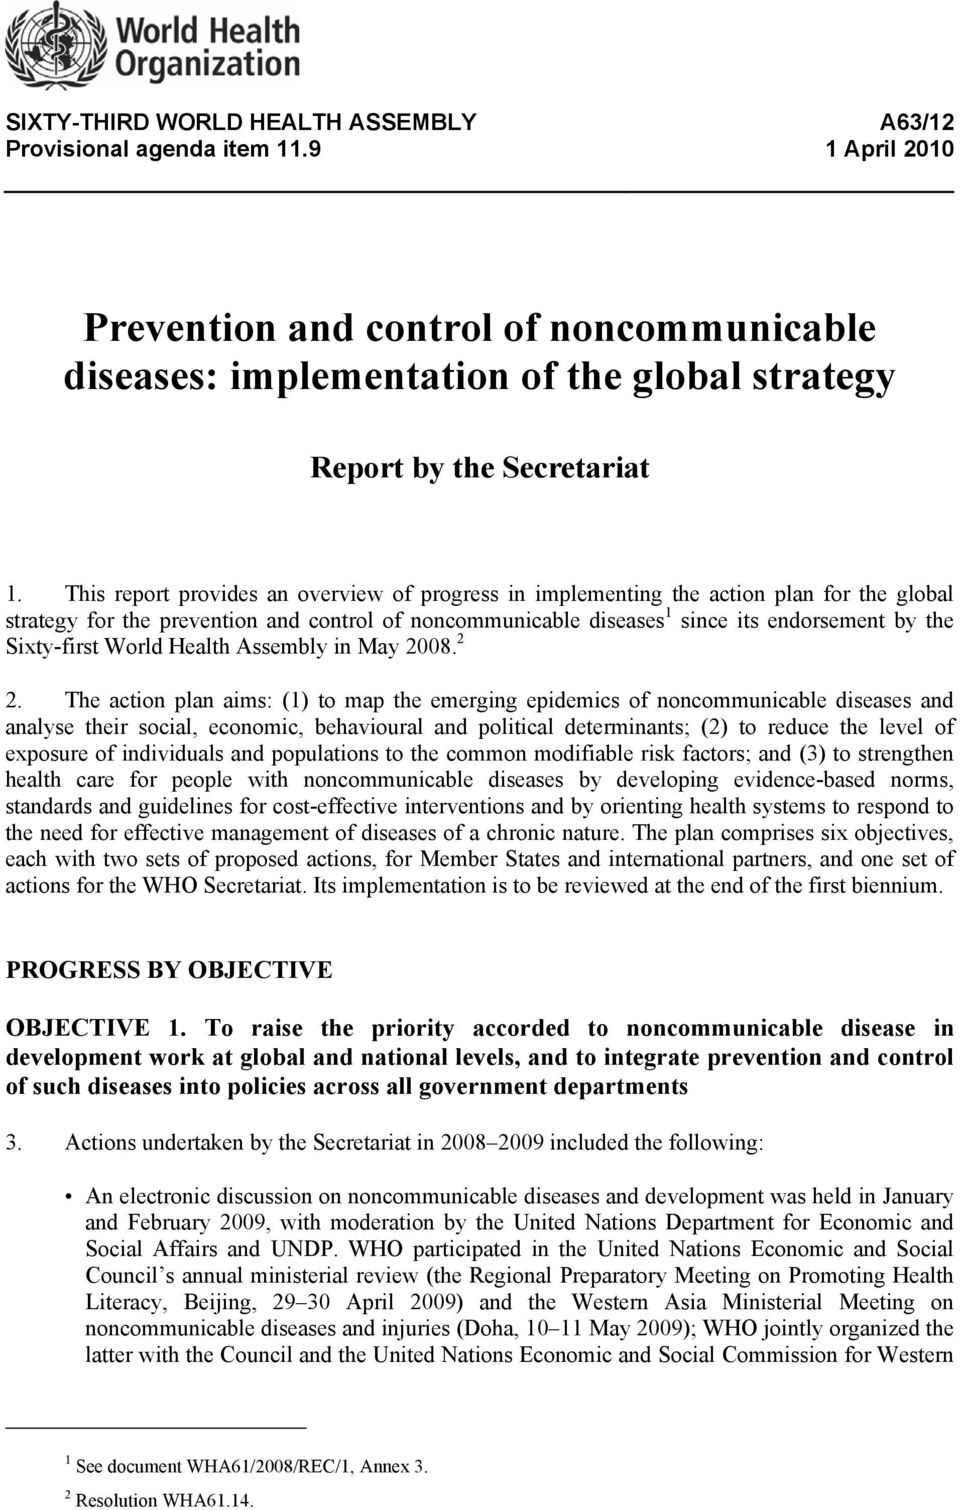 This report provides an overview of progress in implementing the action plan for the global strategy for the prevention and control of noncommunicable diseases 1 since its endorsement by the